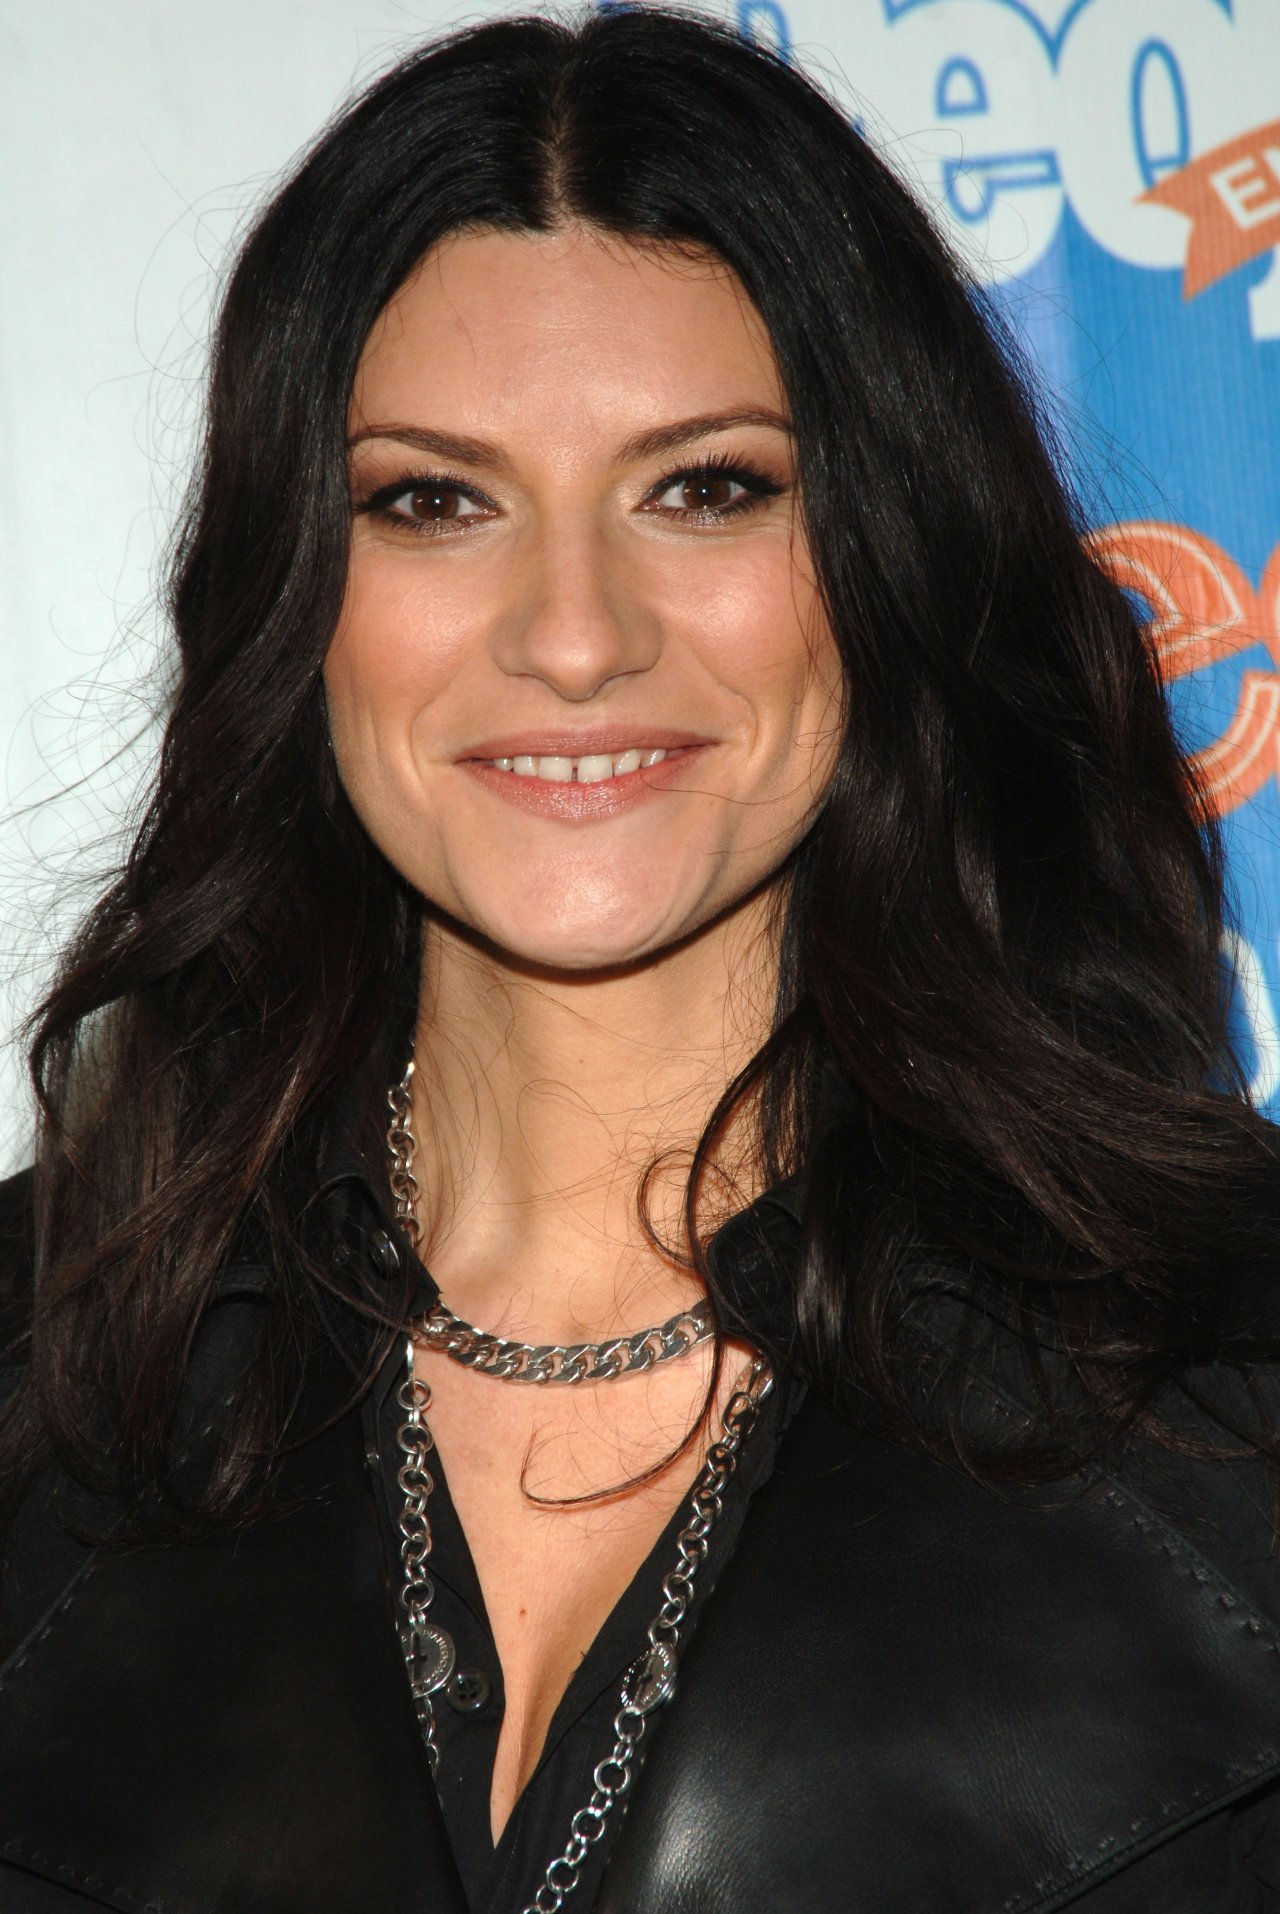 Laura Pausini leaked wallpapers